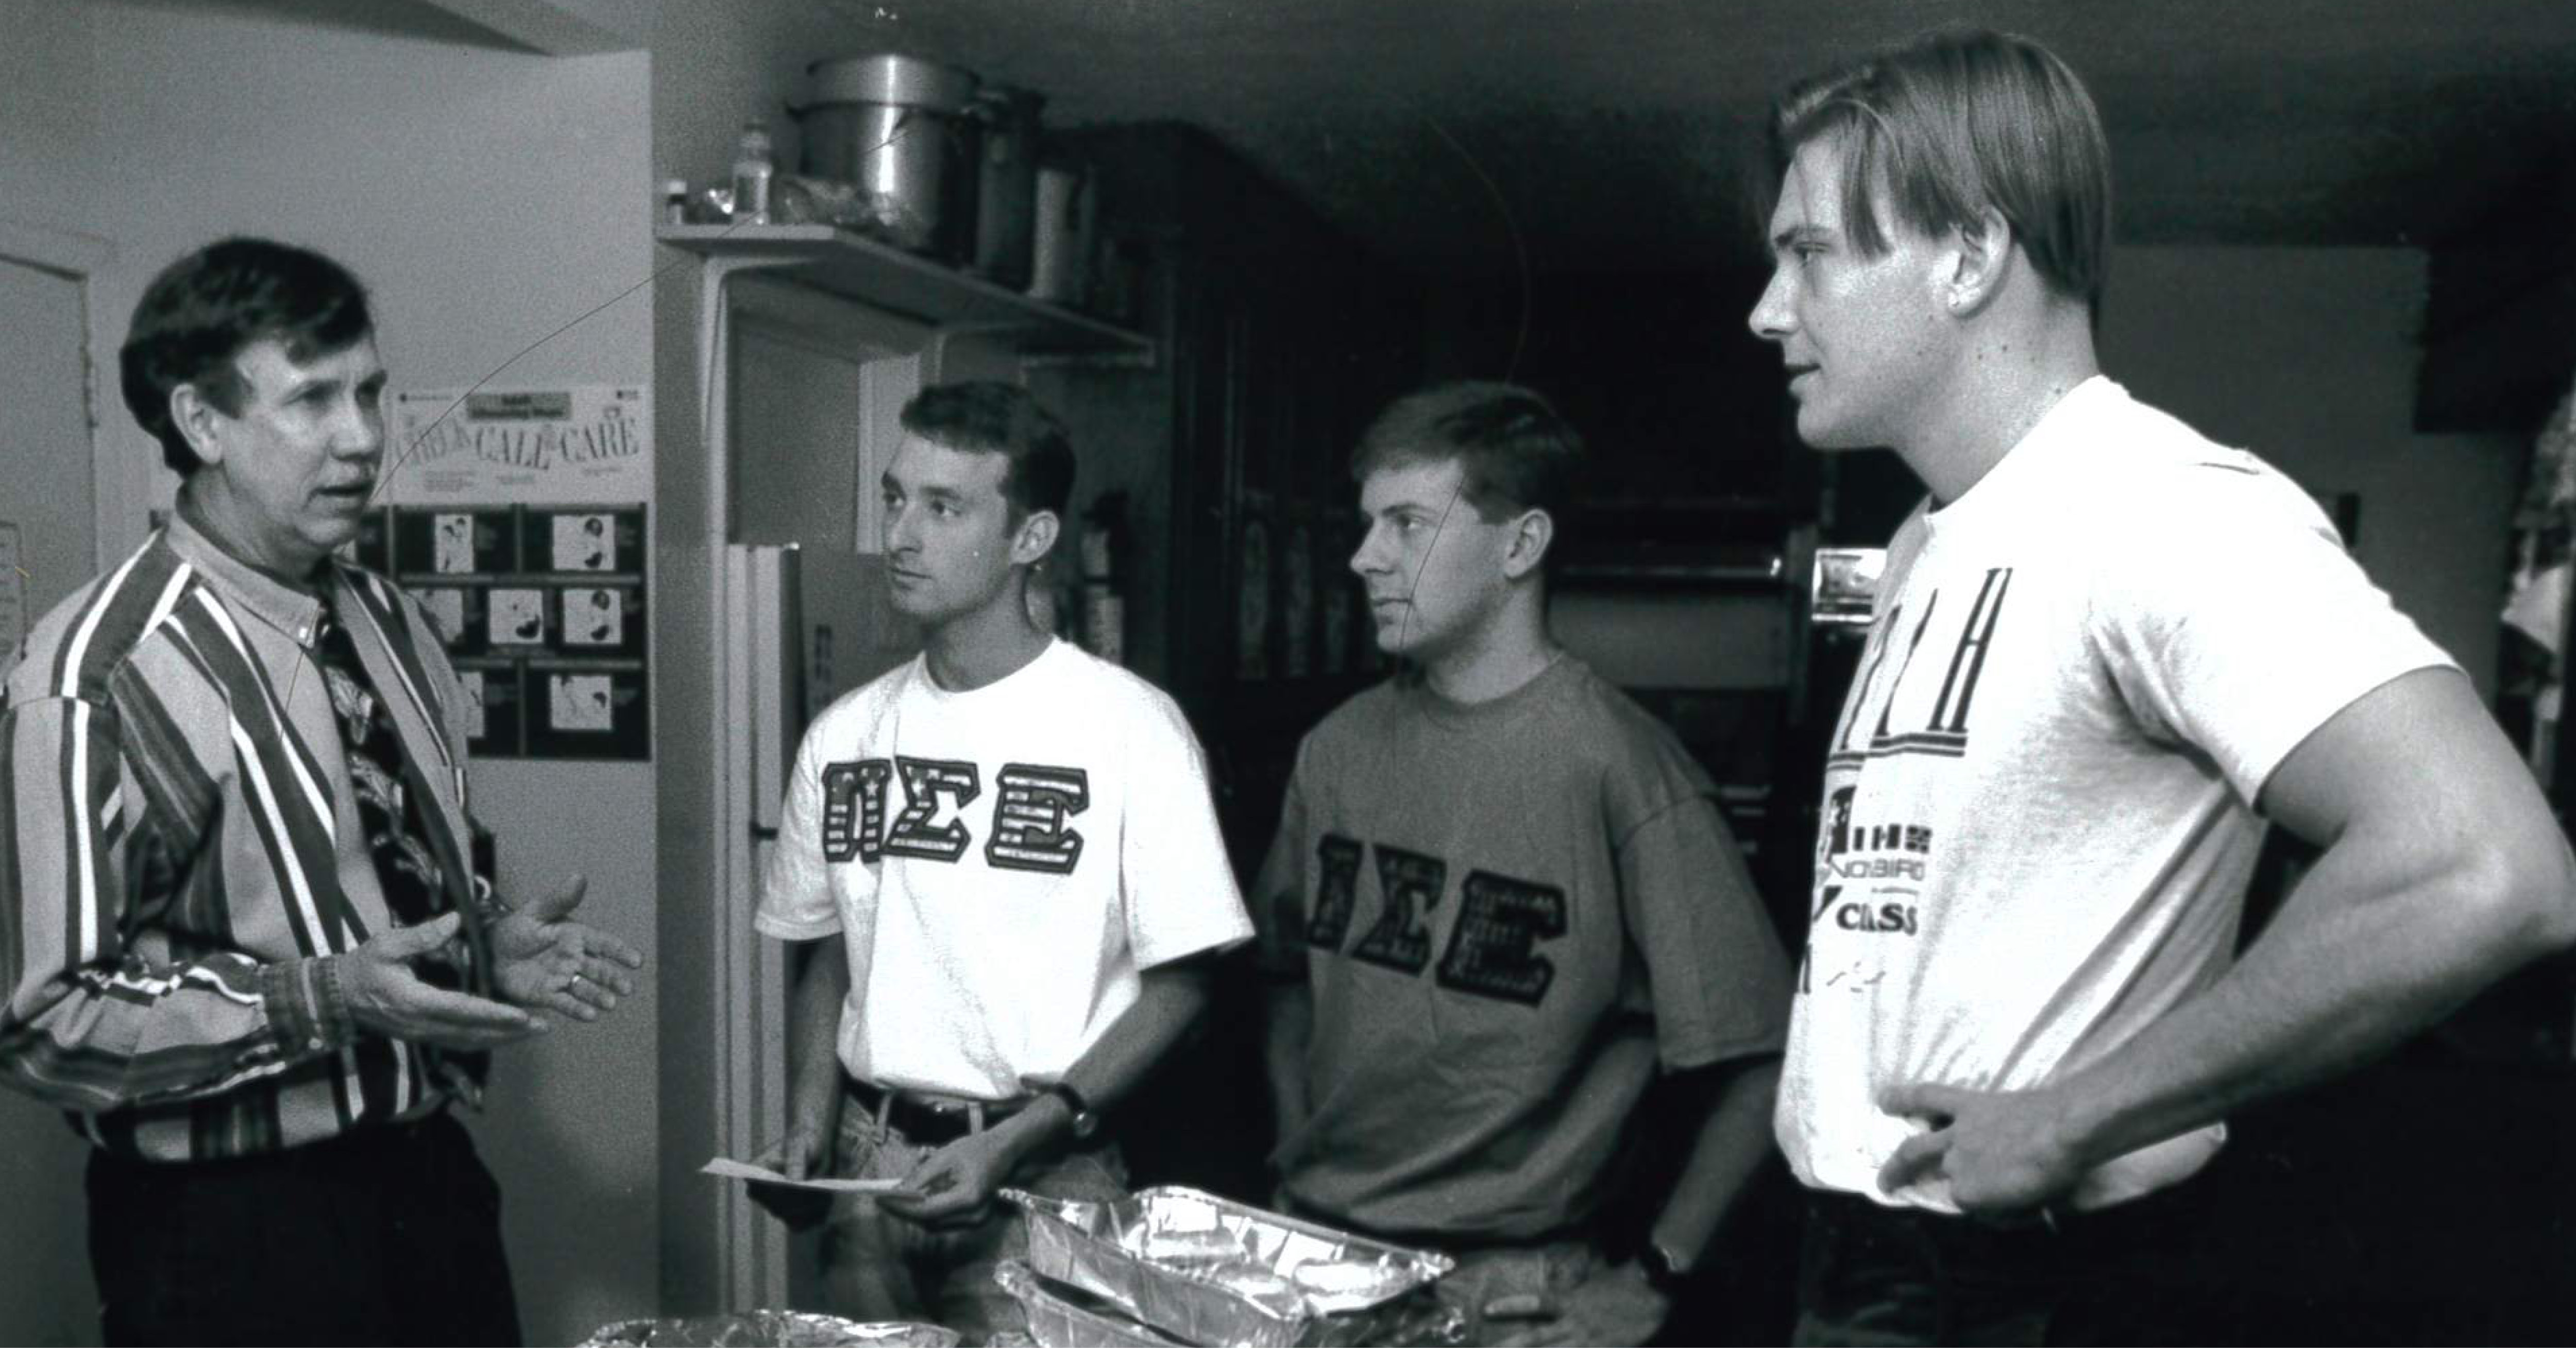 May 1995 Pi Sigma Epsilon students delivering food from cafeteria to Jim Thompson at the Hospitality House